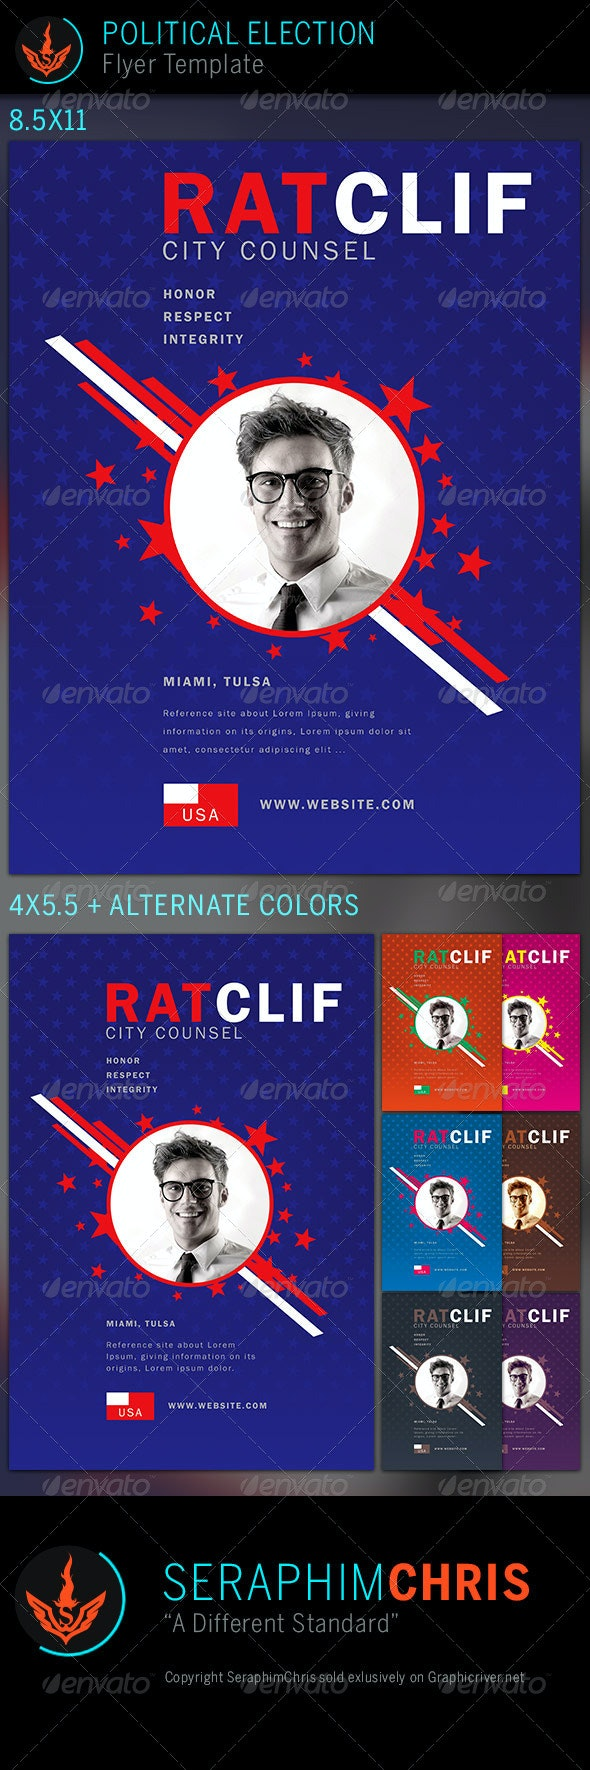 Political Election Flyer Template 3 - Corporate Flyers